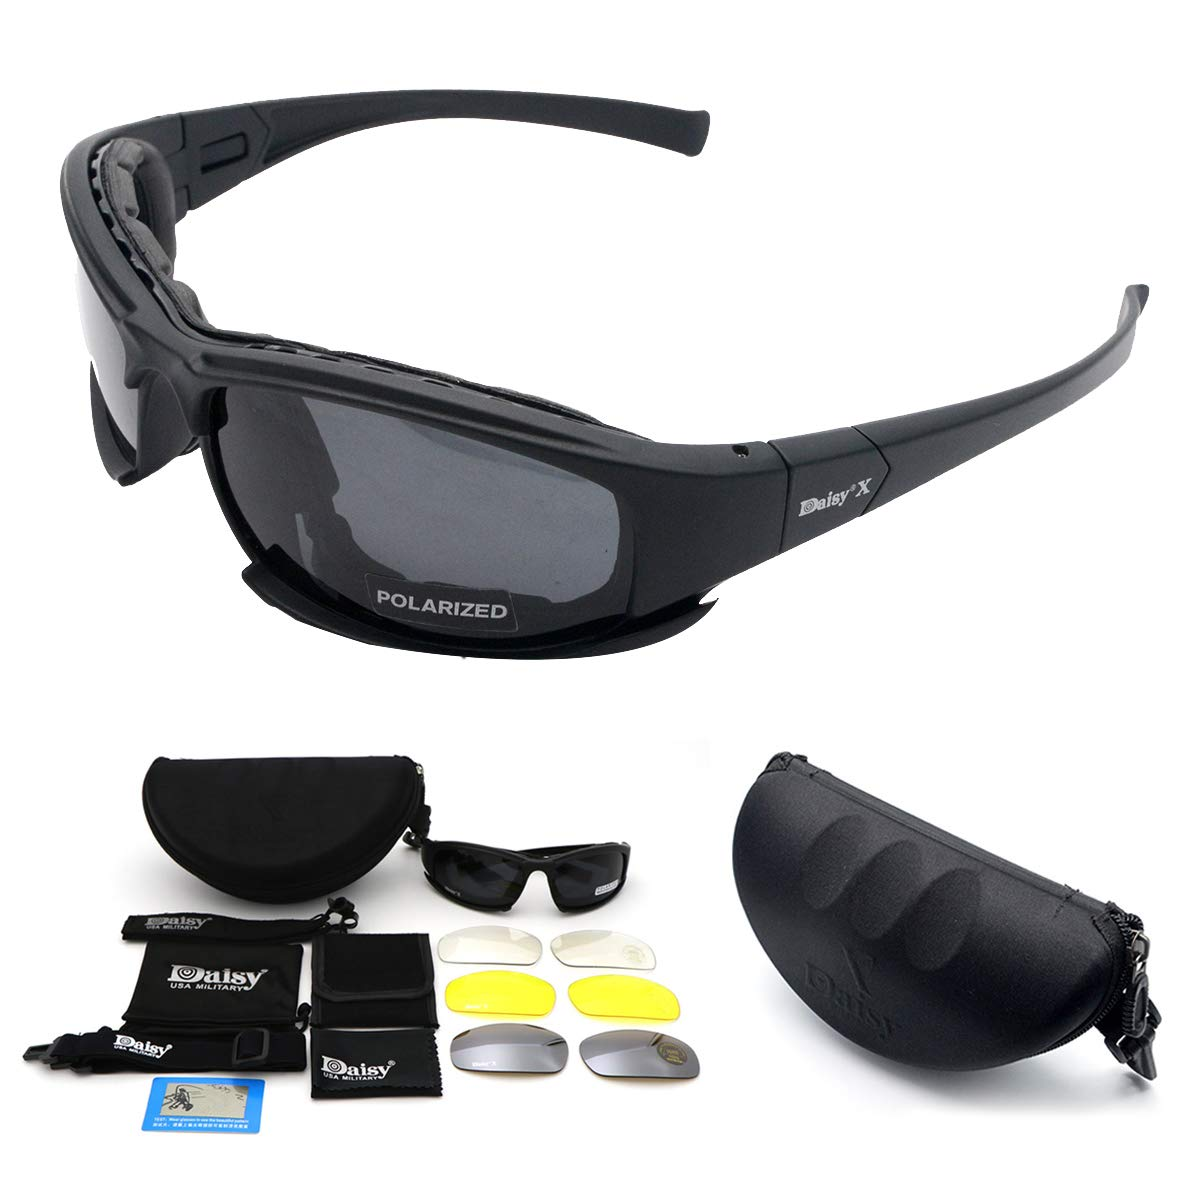 Military Goggles Tactical, MASO polarized daisy x7 army sunglasses Protective Glasses With 4 Interchangeable Lens, Polarized Sport Sunglasses for Men and Women in Running Cycling Skiing Fishing by Maso